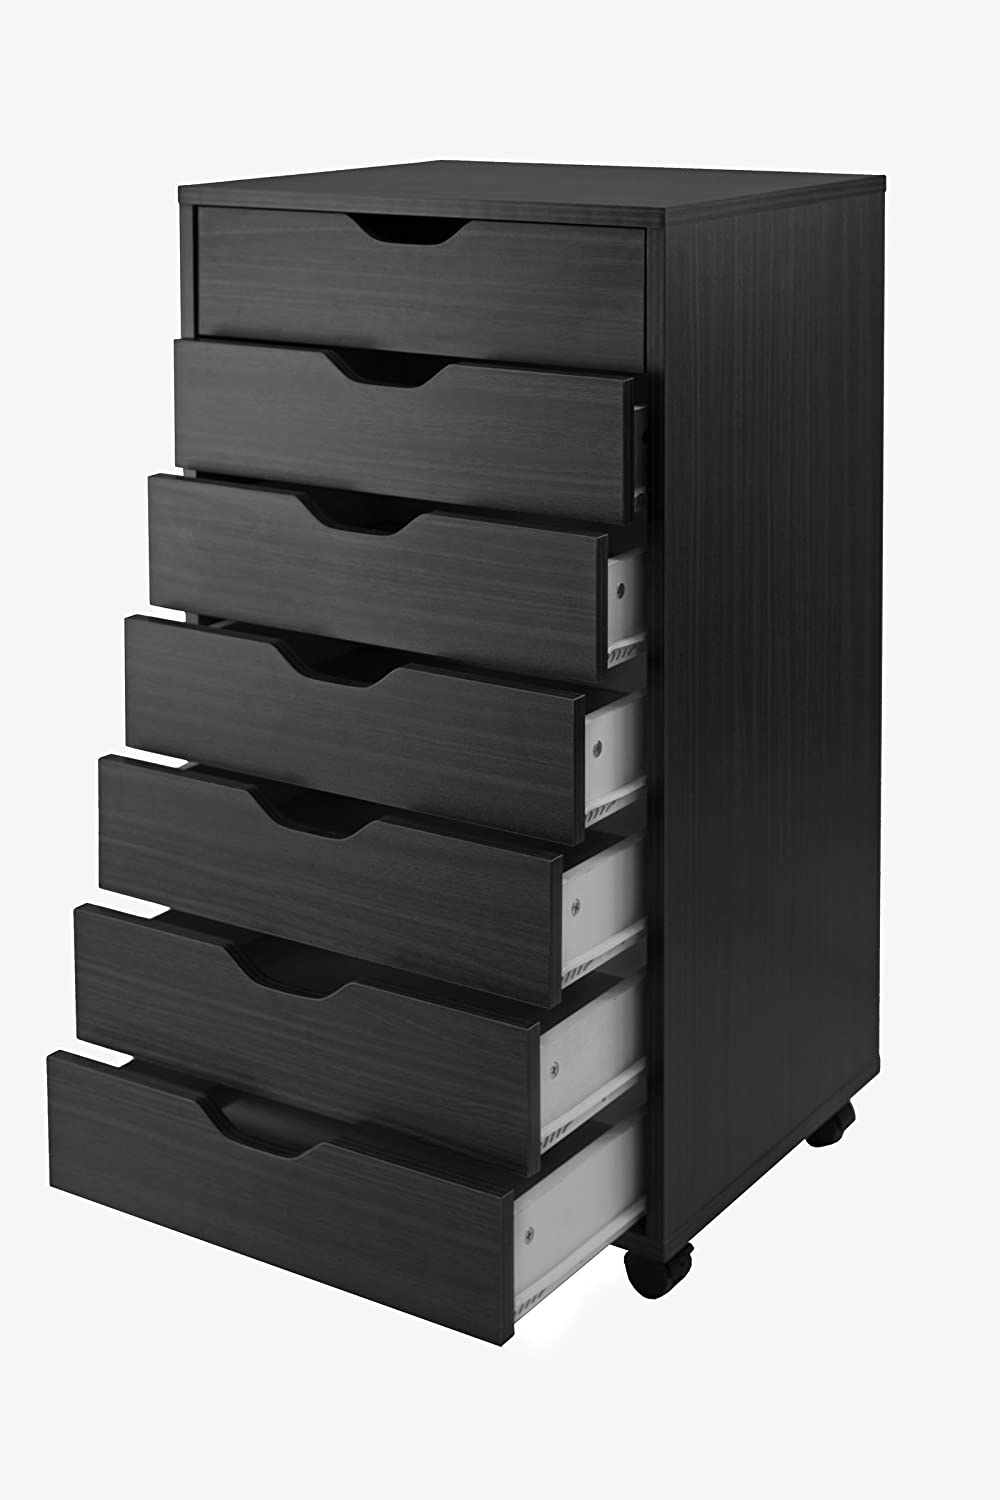 Merveilleux Amazon.com: Winsome Halifax Cabinet For Closet/Office, 7 Drawers, Black:  Kitchen U0026 Dining